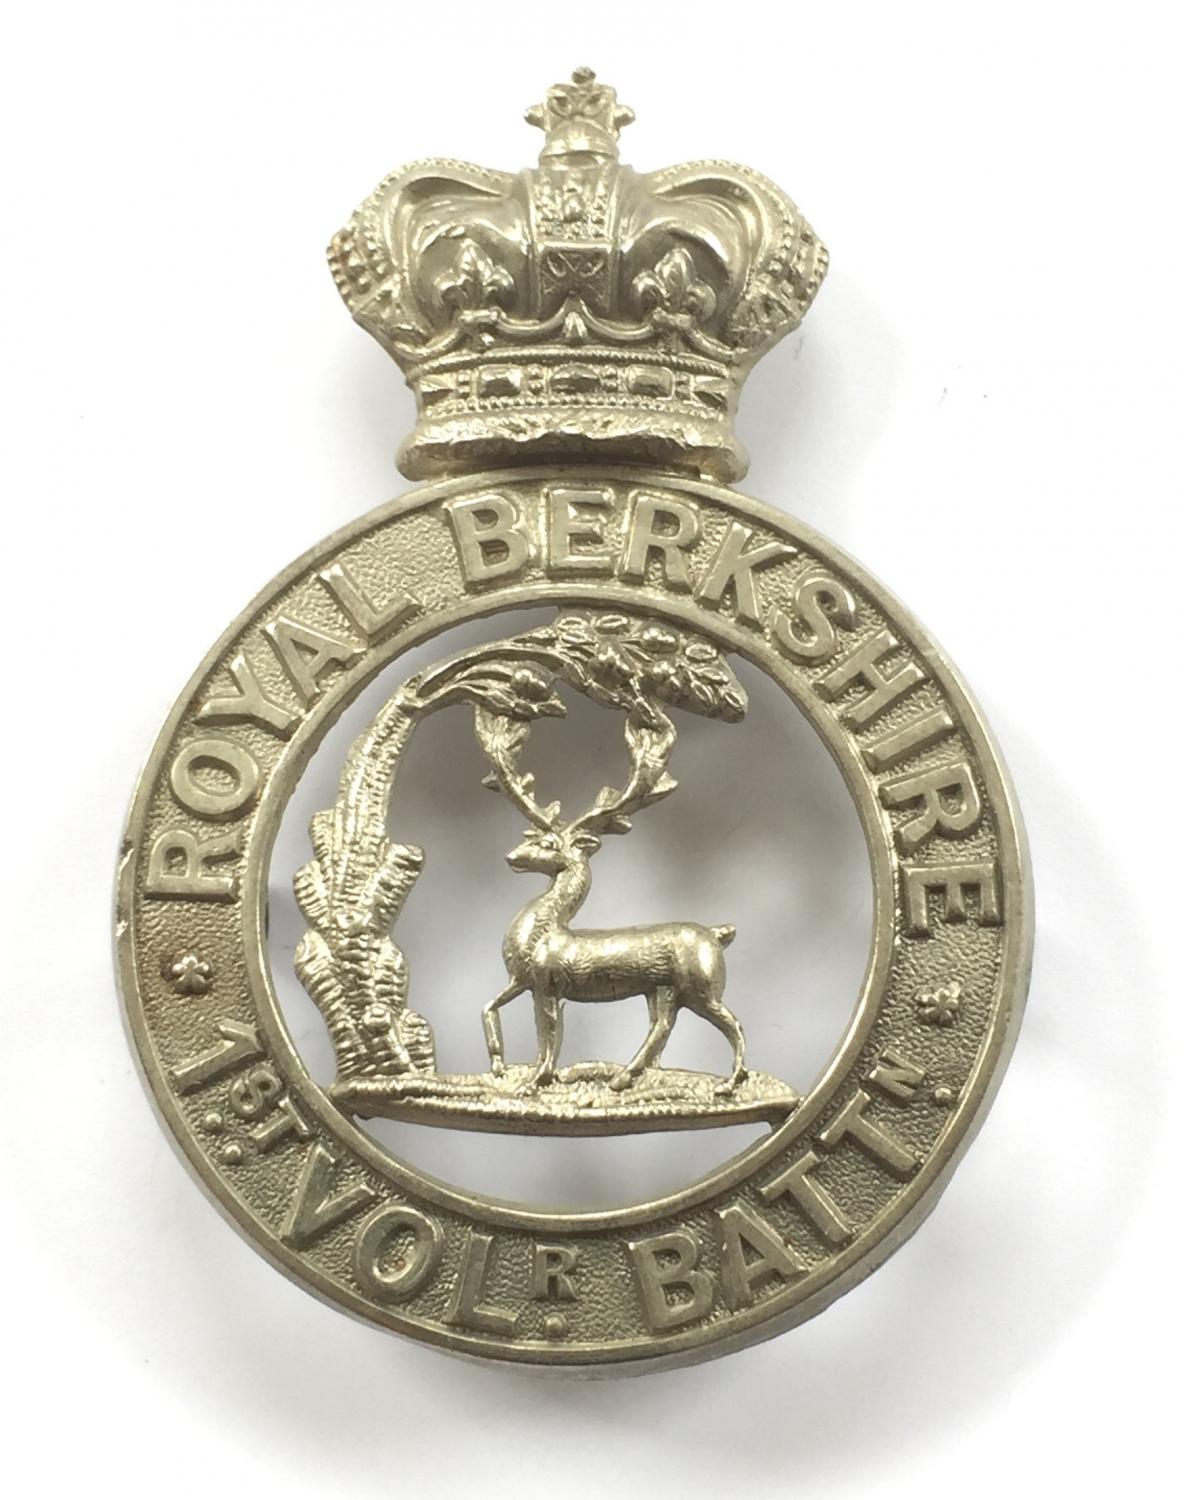 1st (Reading) VB Royal Berkshire Victorian glengarry badge